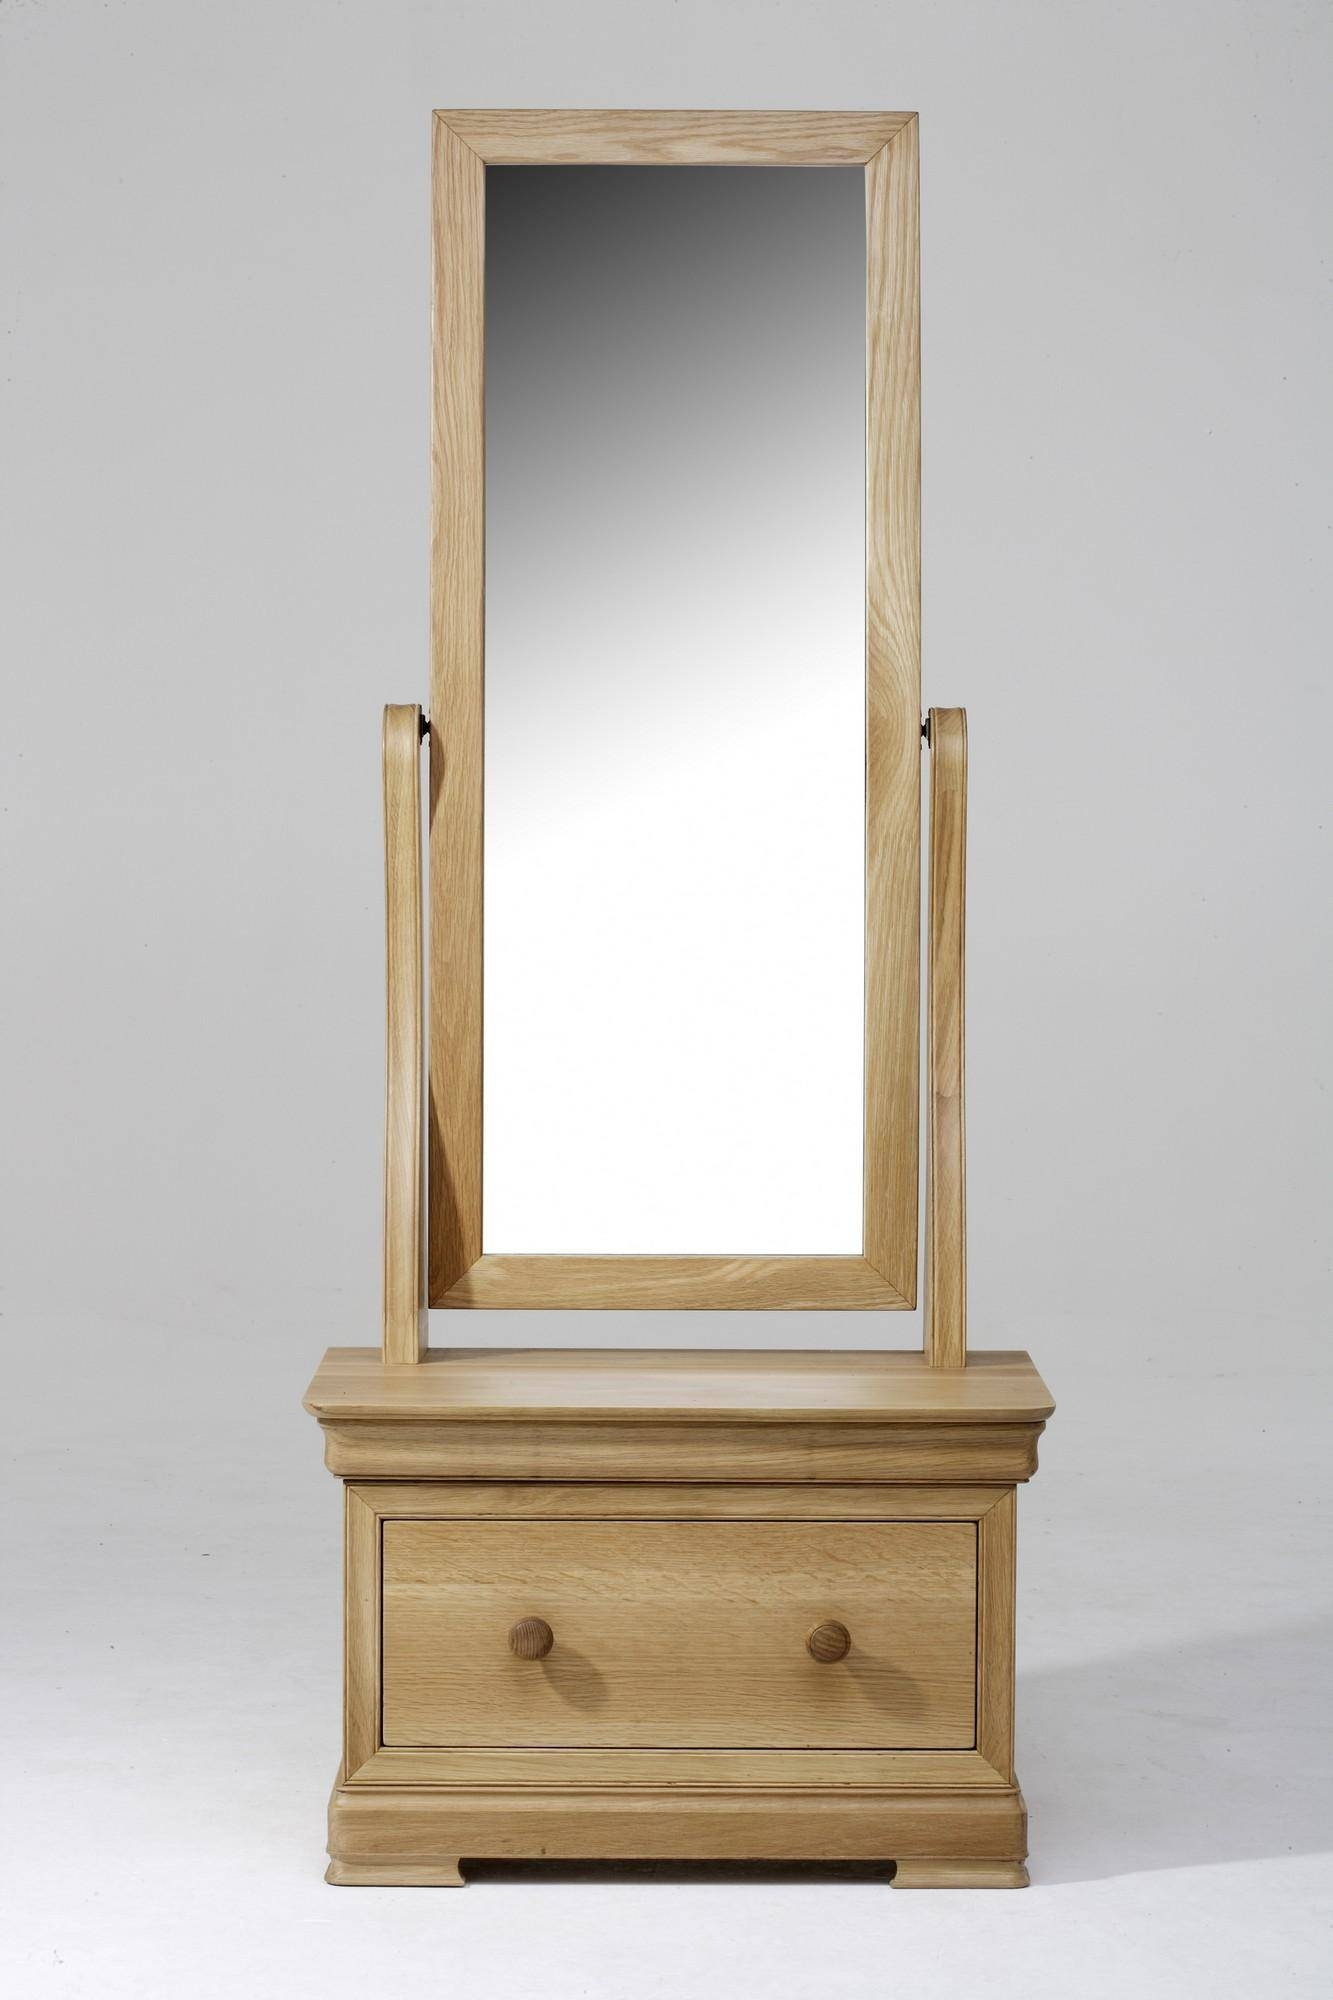 Decorating: Amusing Cheval Mirror For Home Furniture Ideas — Mtyp within Full Length Free Standing Mirrors With Drawer (Image 7 of 25)